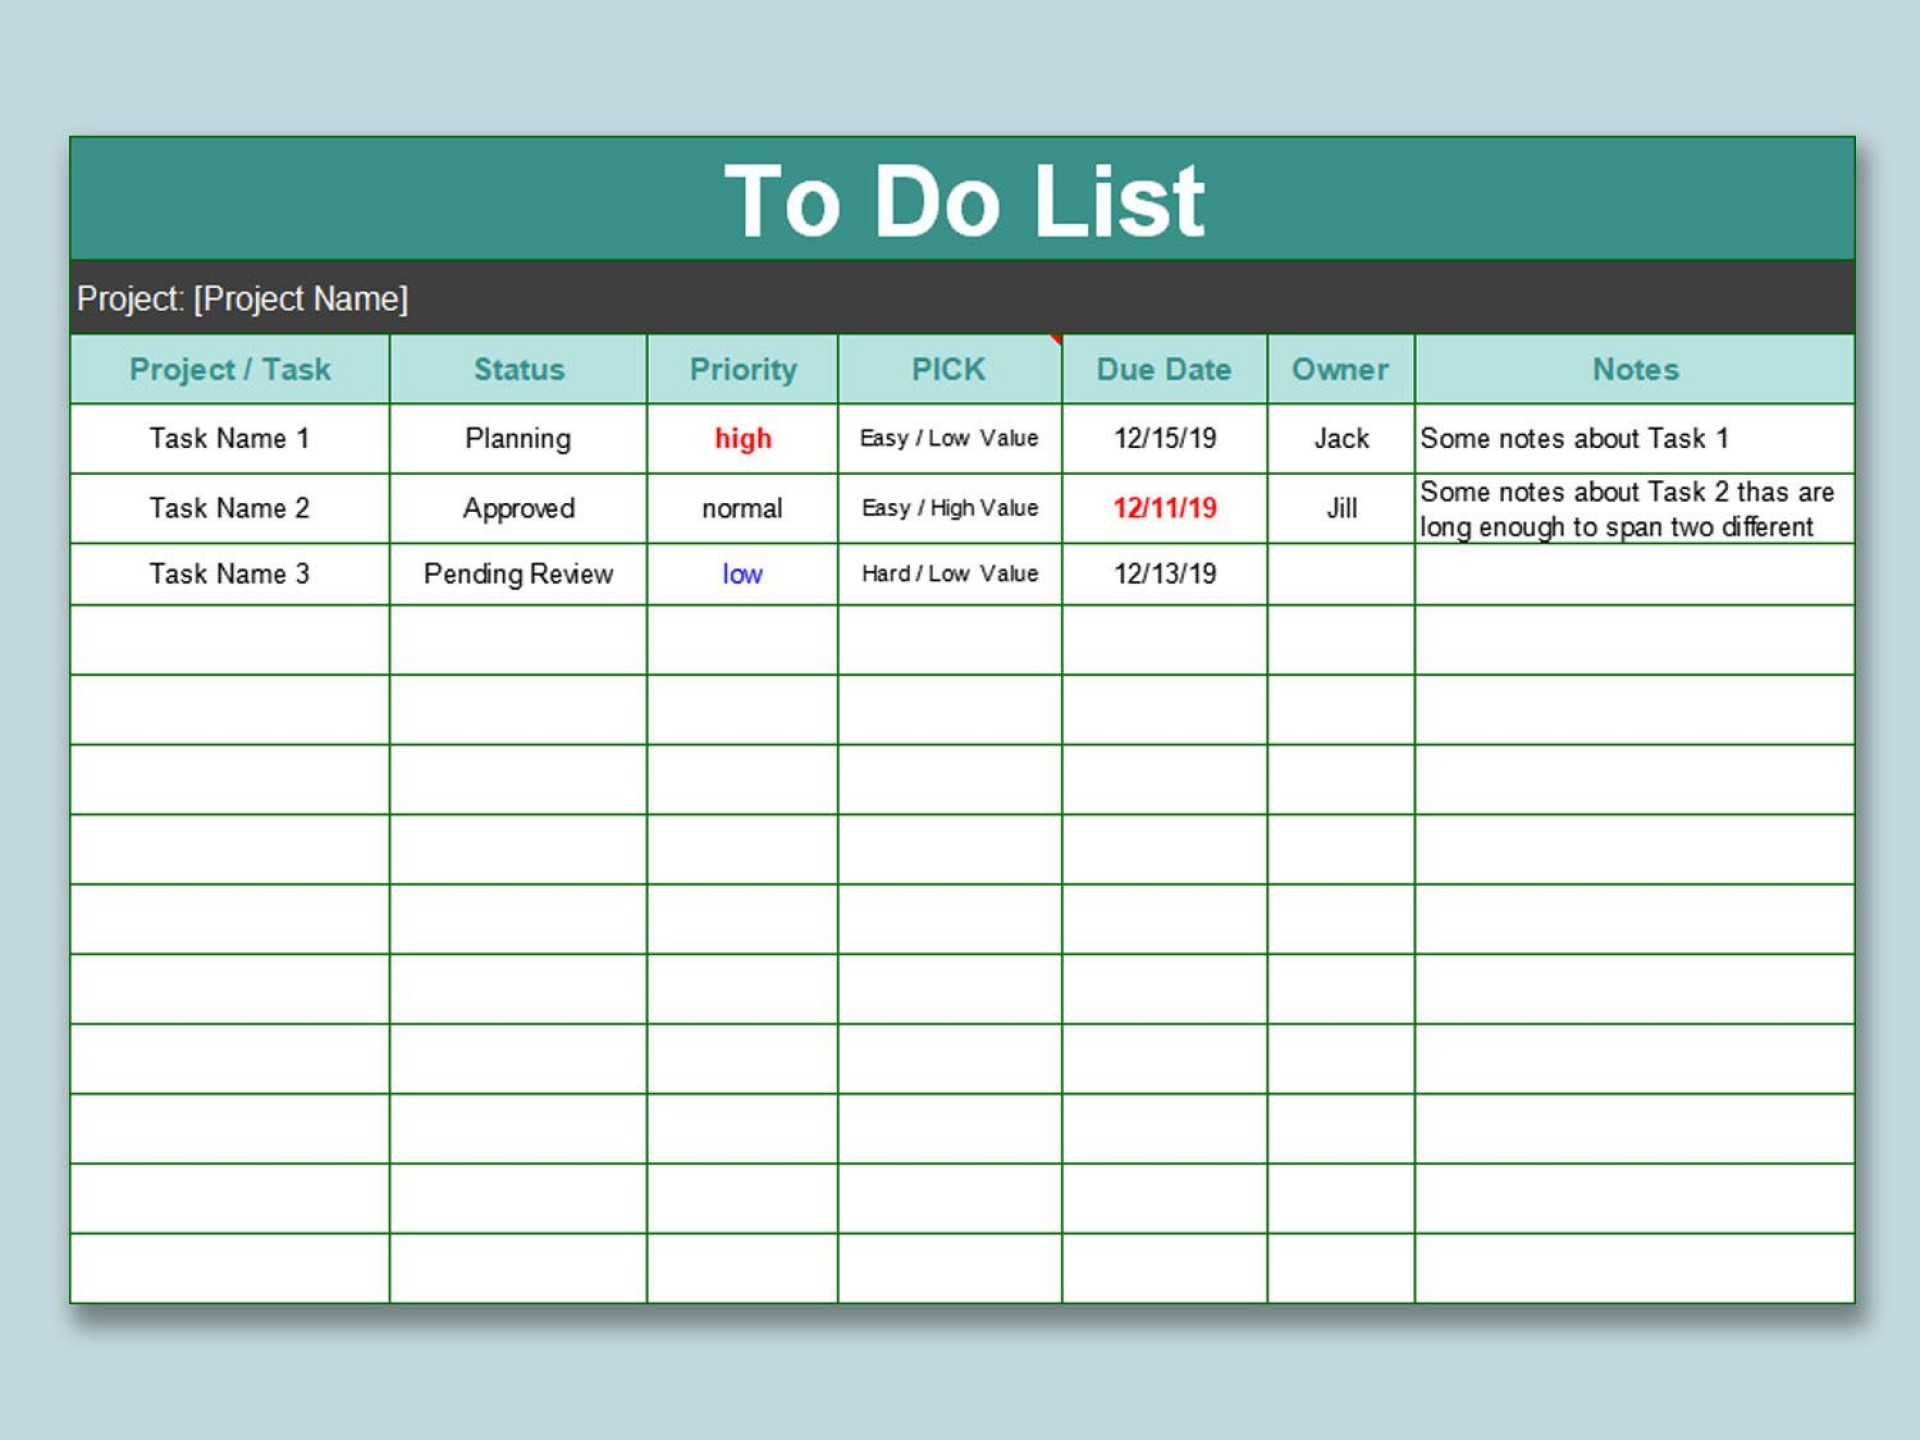 004 Shocking To Do List Template Free High Definition 1920